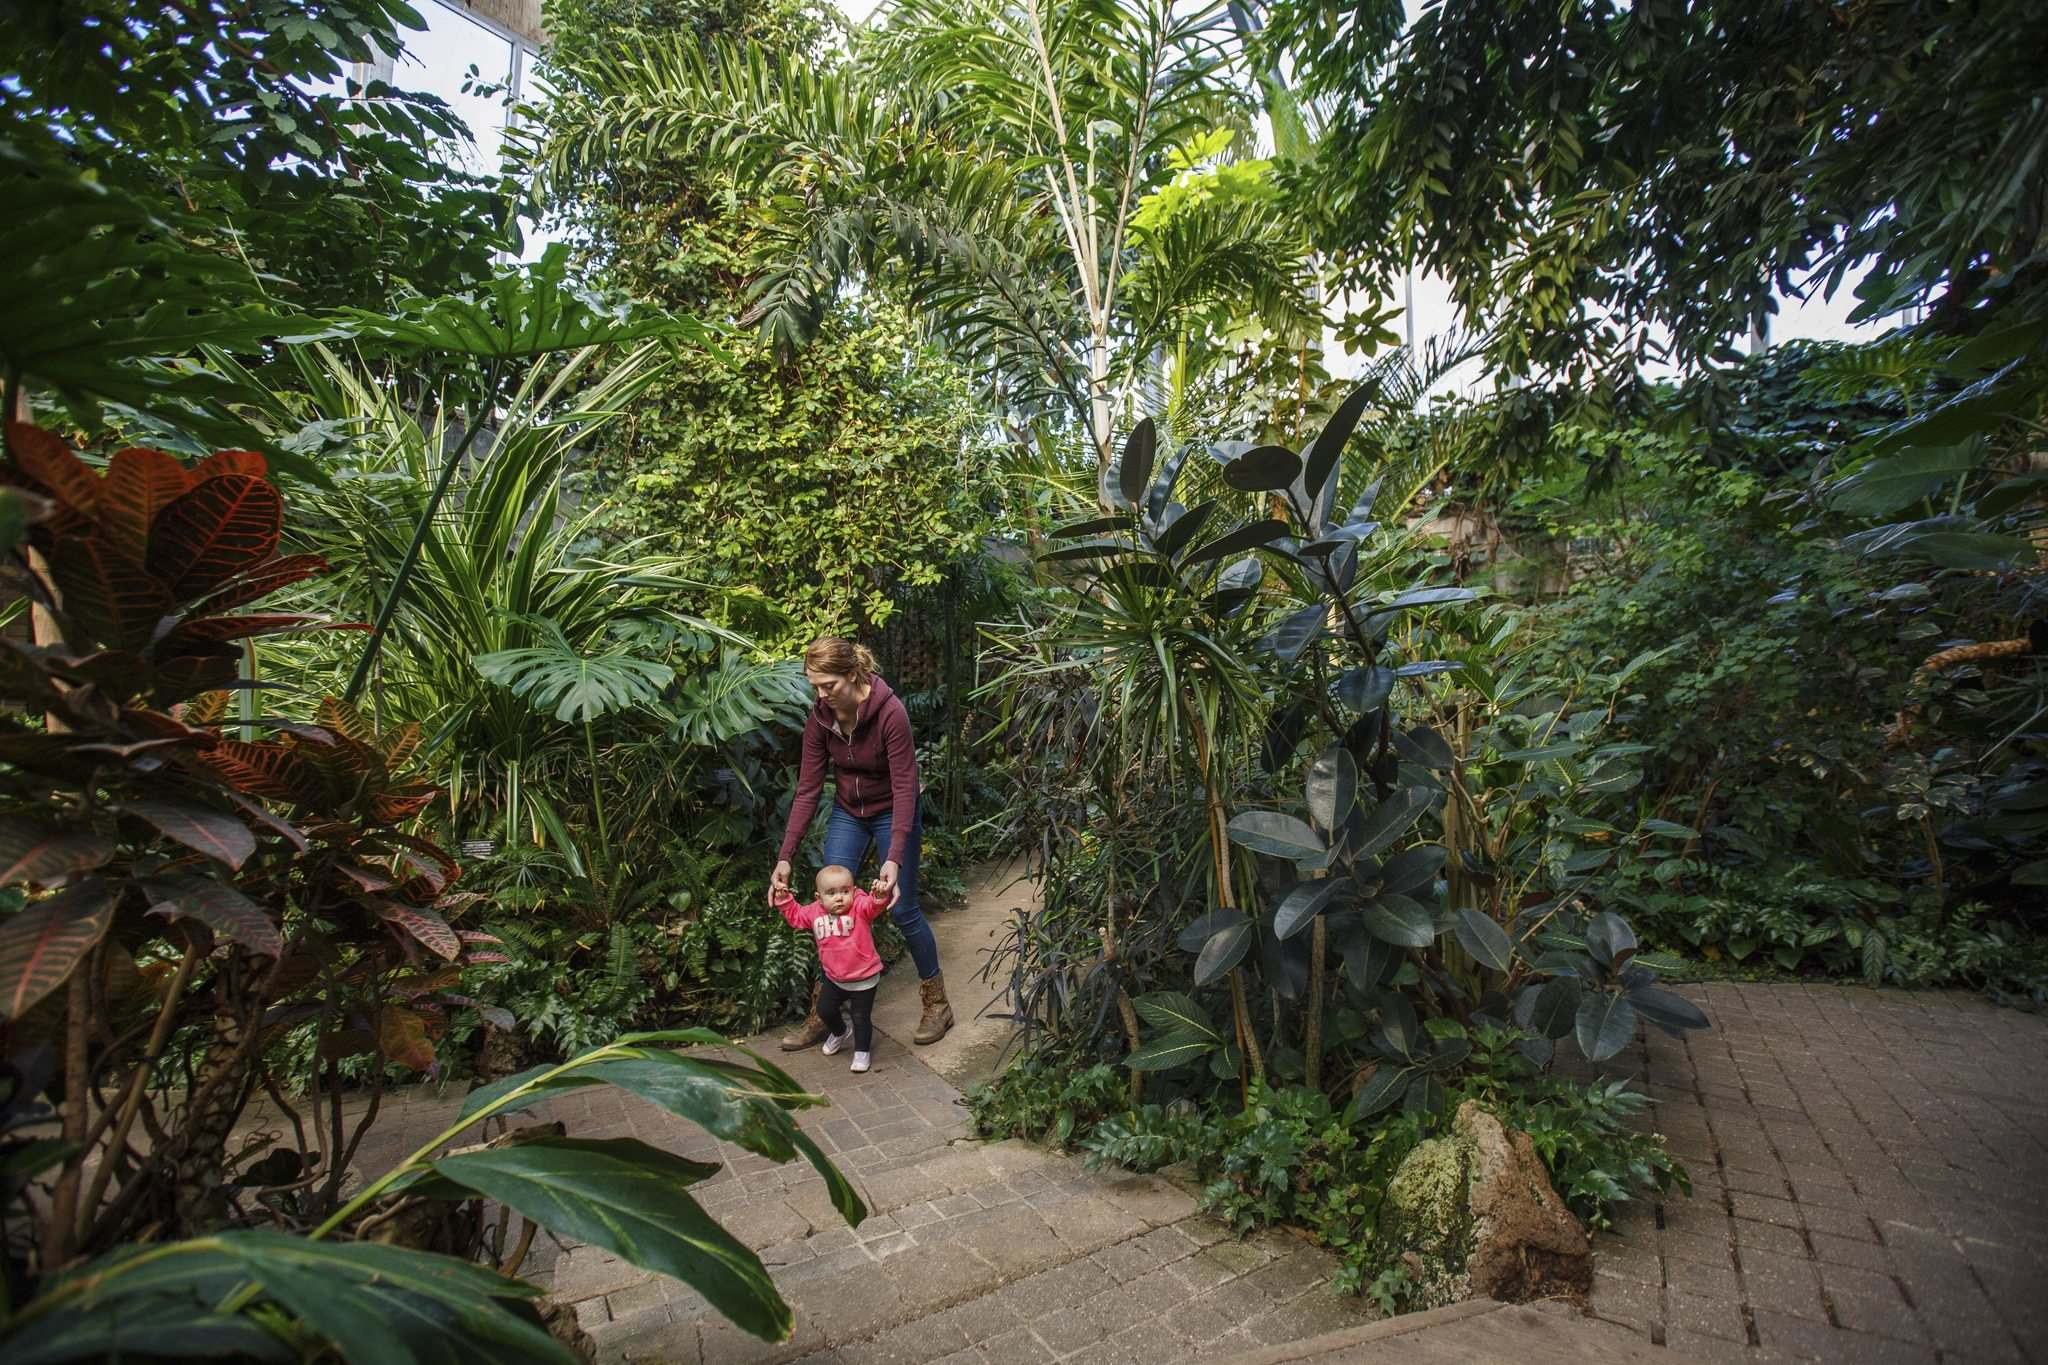 Lindsay Cook and her 11 month old daughter Emma take advantage of the tropical temperatures in the conservatory to stretch their legs on a walk. (Mike Deal / Winnipeg Free Press)</p>